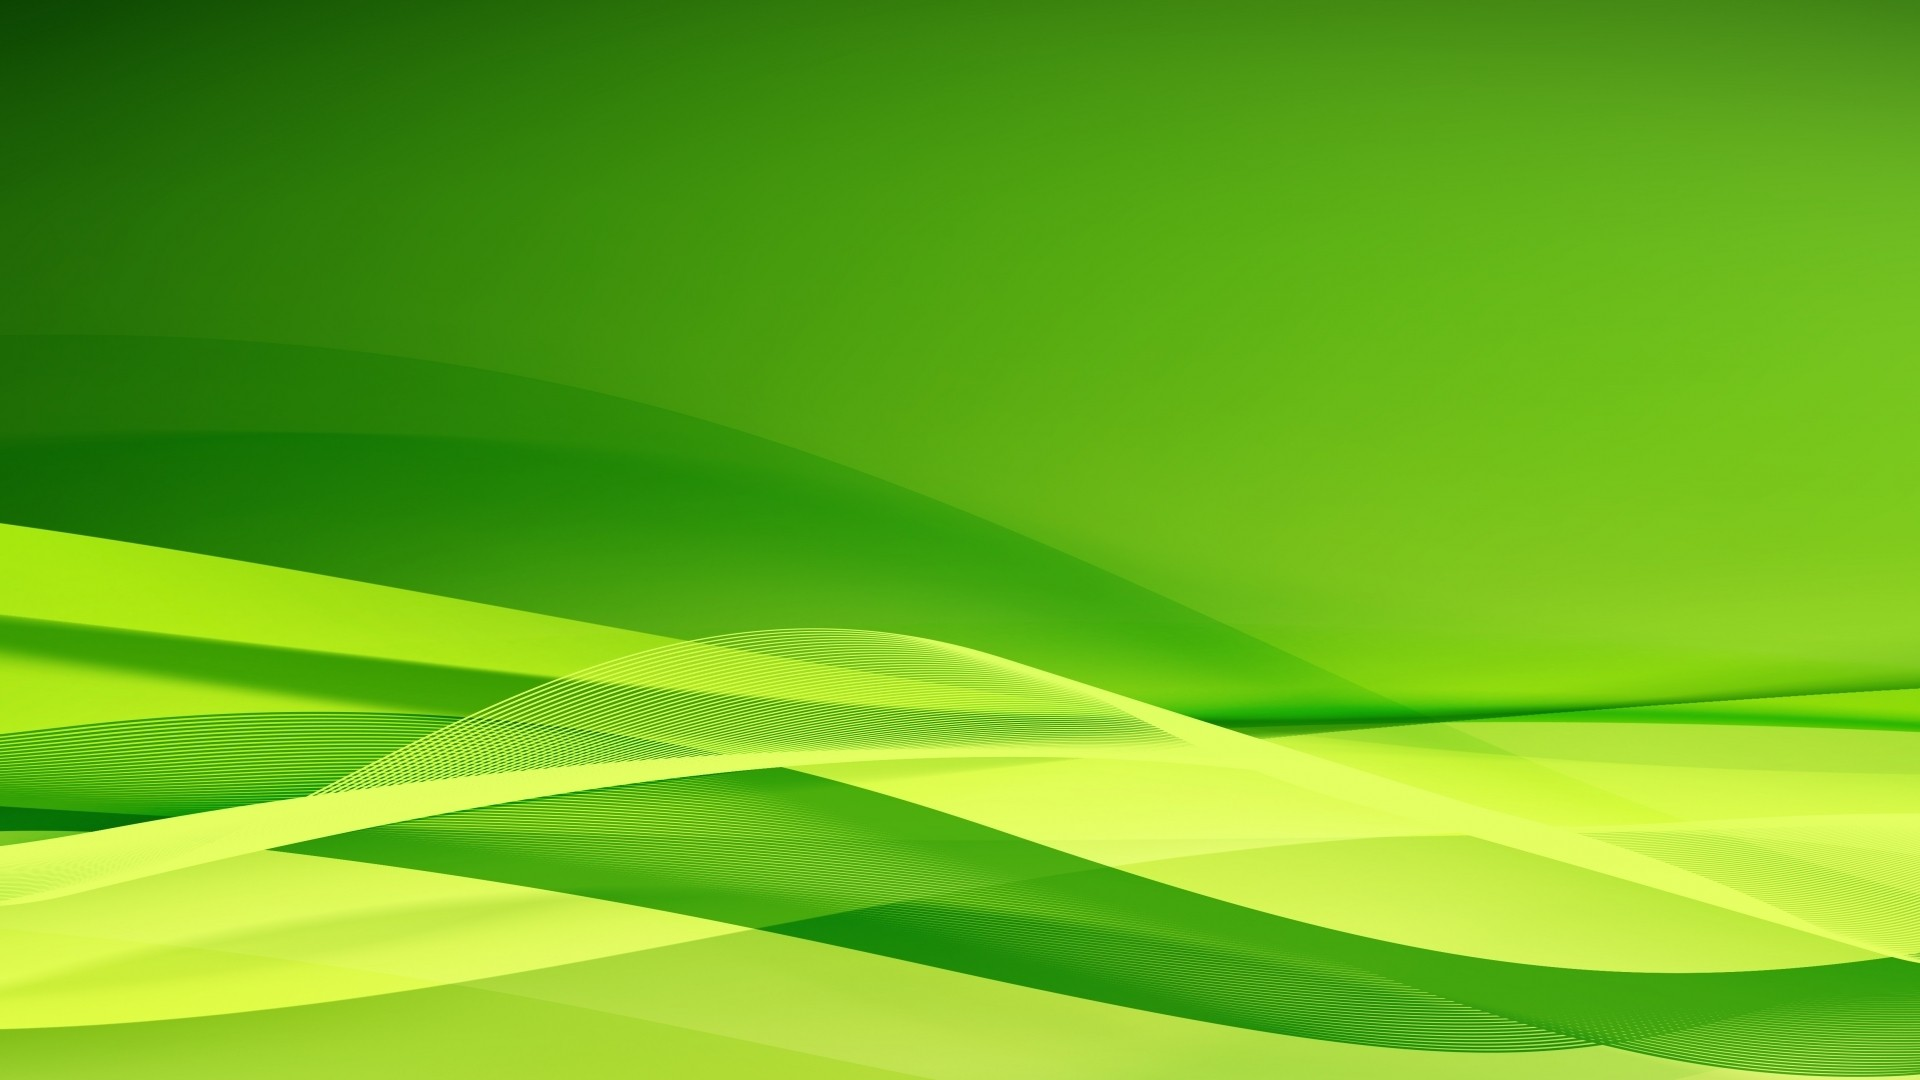 Lime Green Free Wallpaper and Background